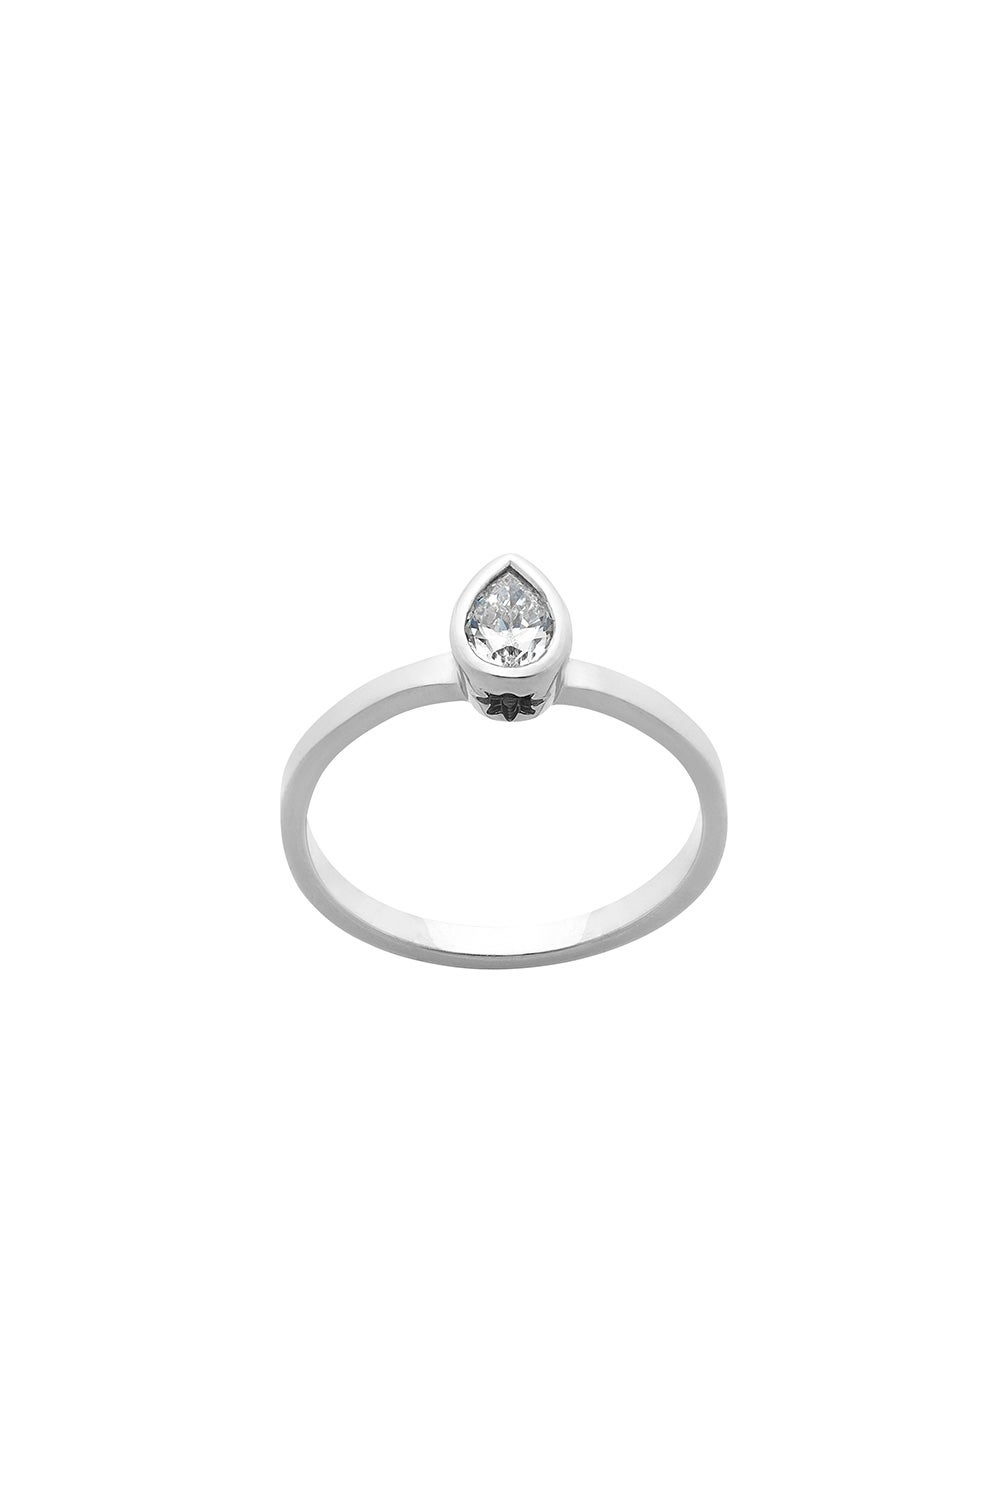 Diamond Pear Ring, 9ct White Gold, .25ct Diamond